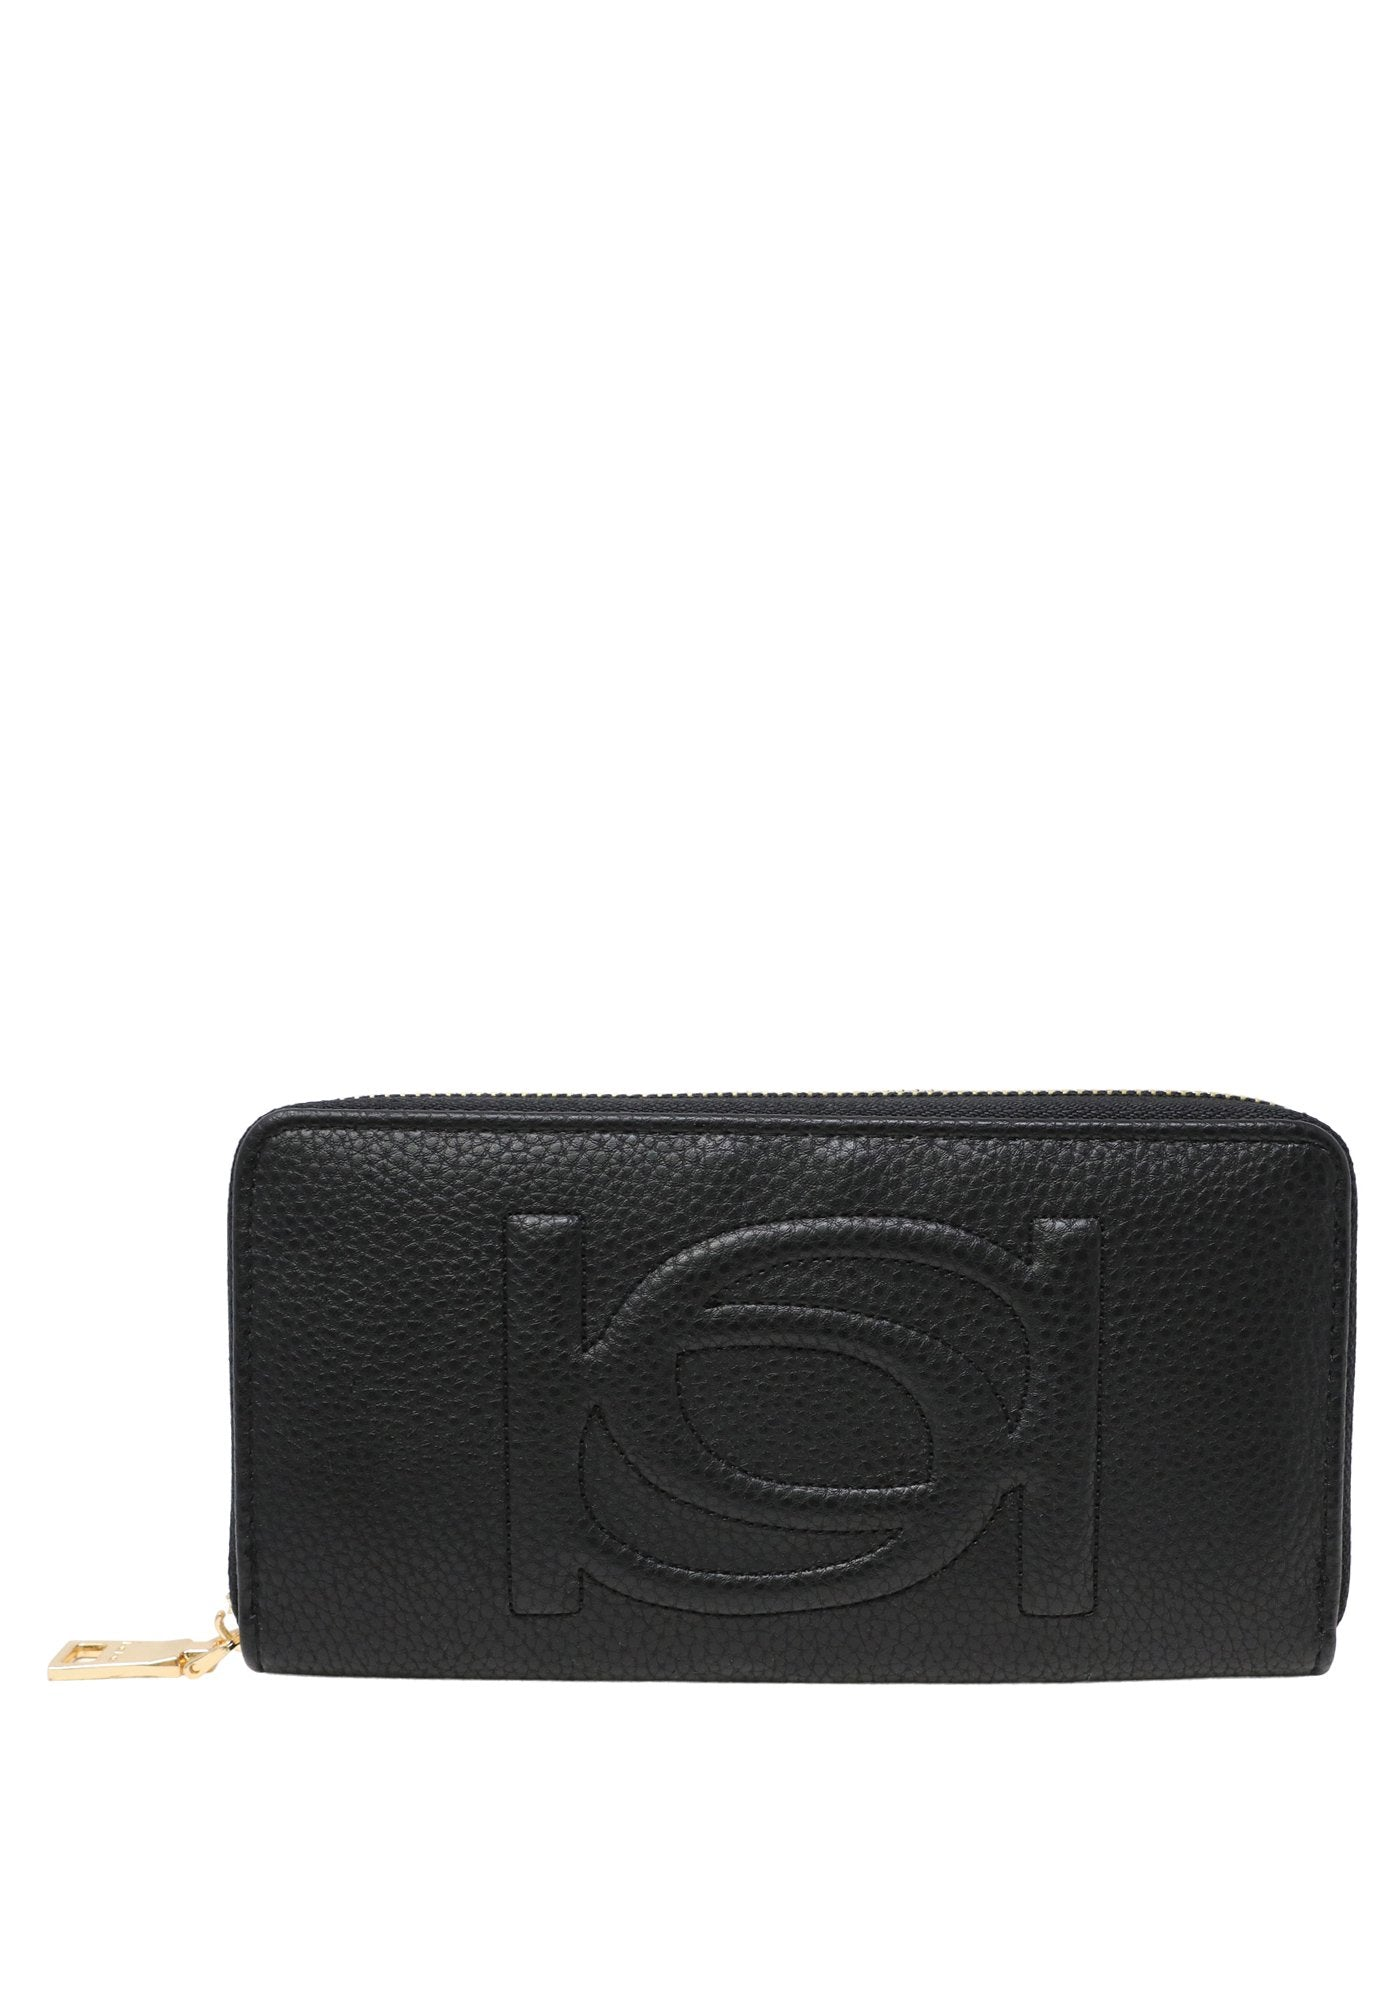 Bebe Women's Poppy Zip Around Wallet, Size OS in Black Polyurethane